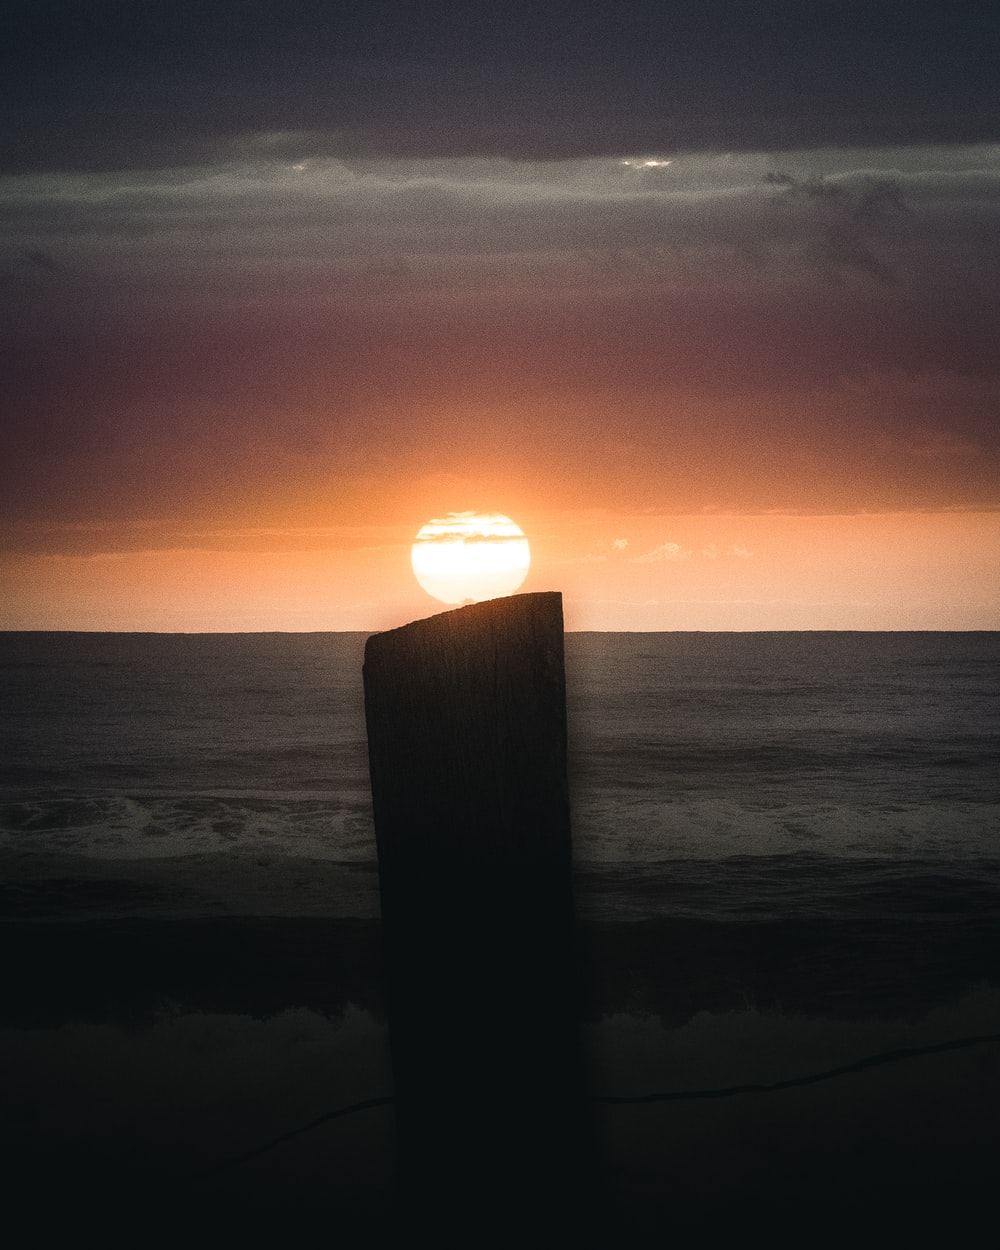 brown wooden post on sea shore during sunset